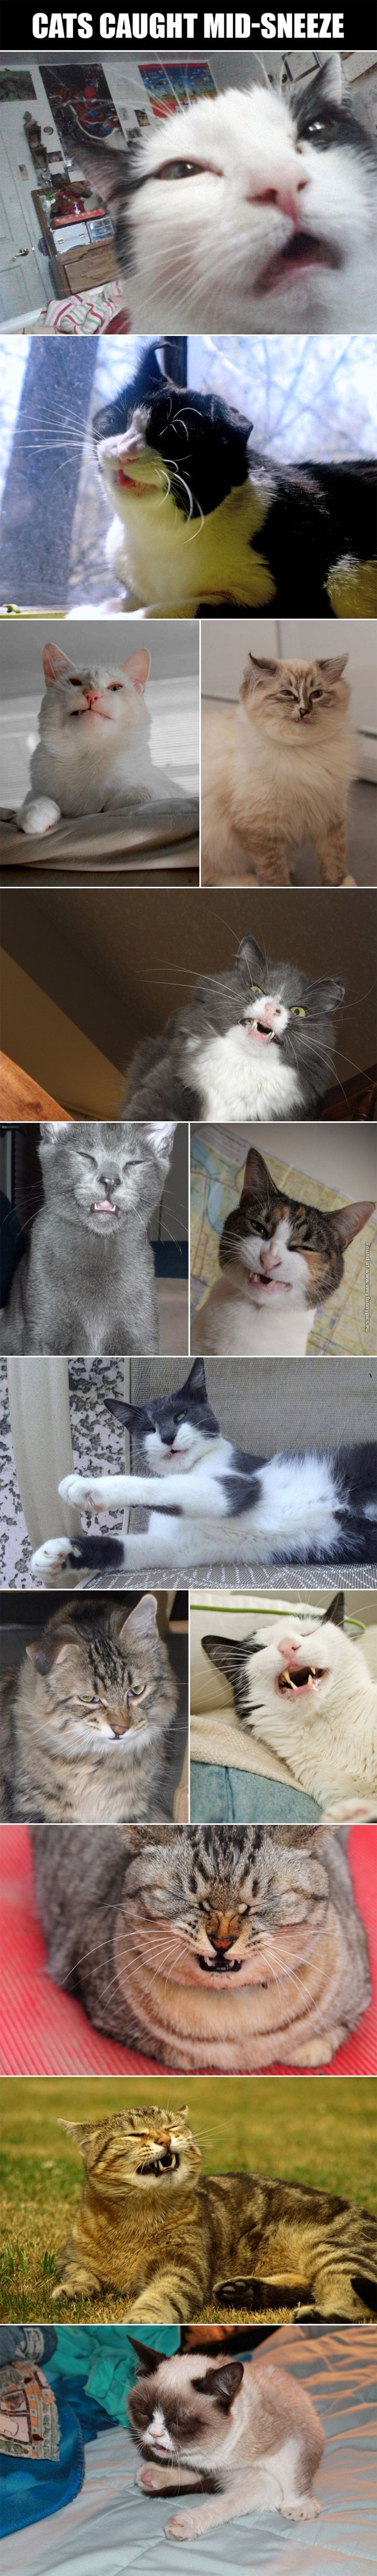 Cats caught mid-sneeze